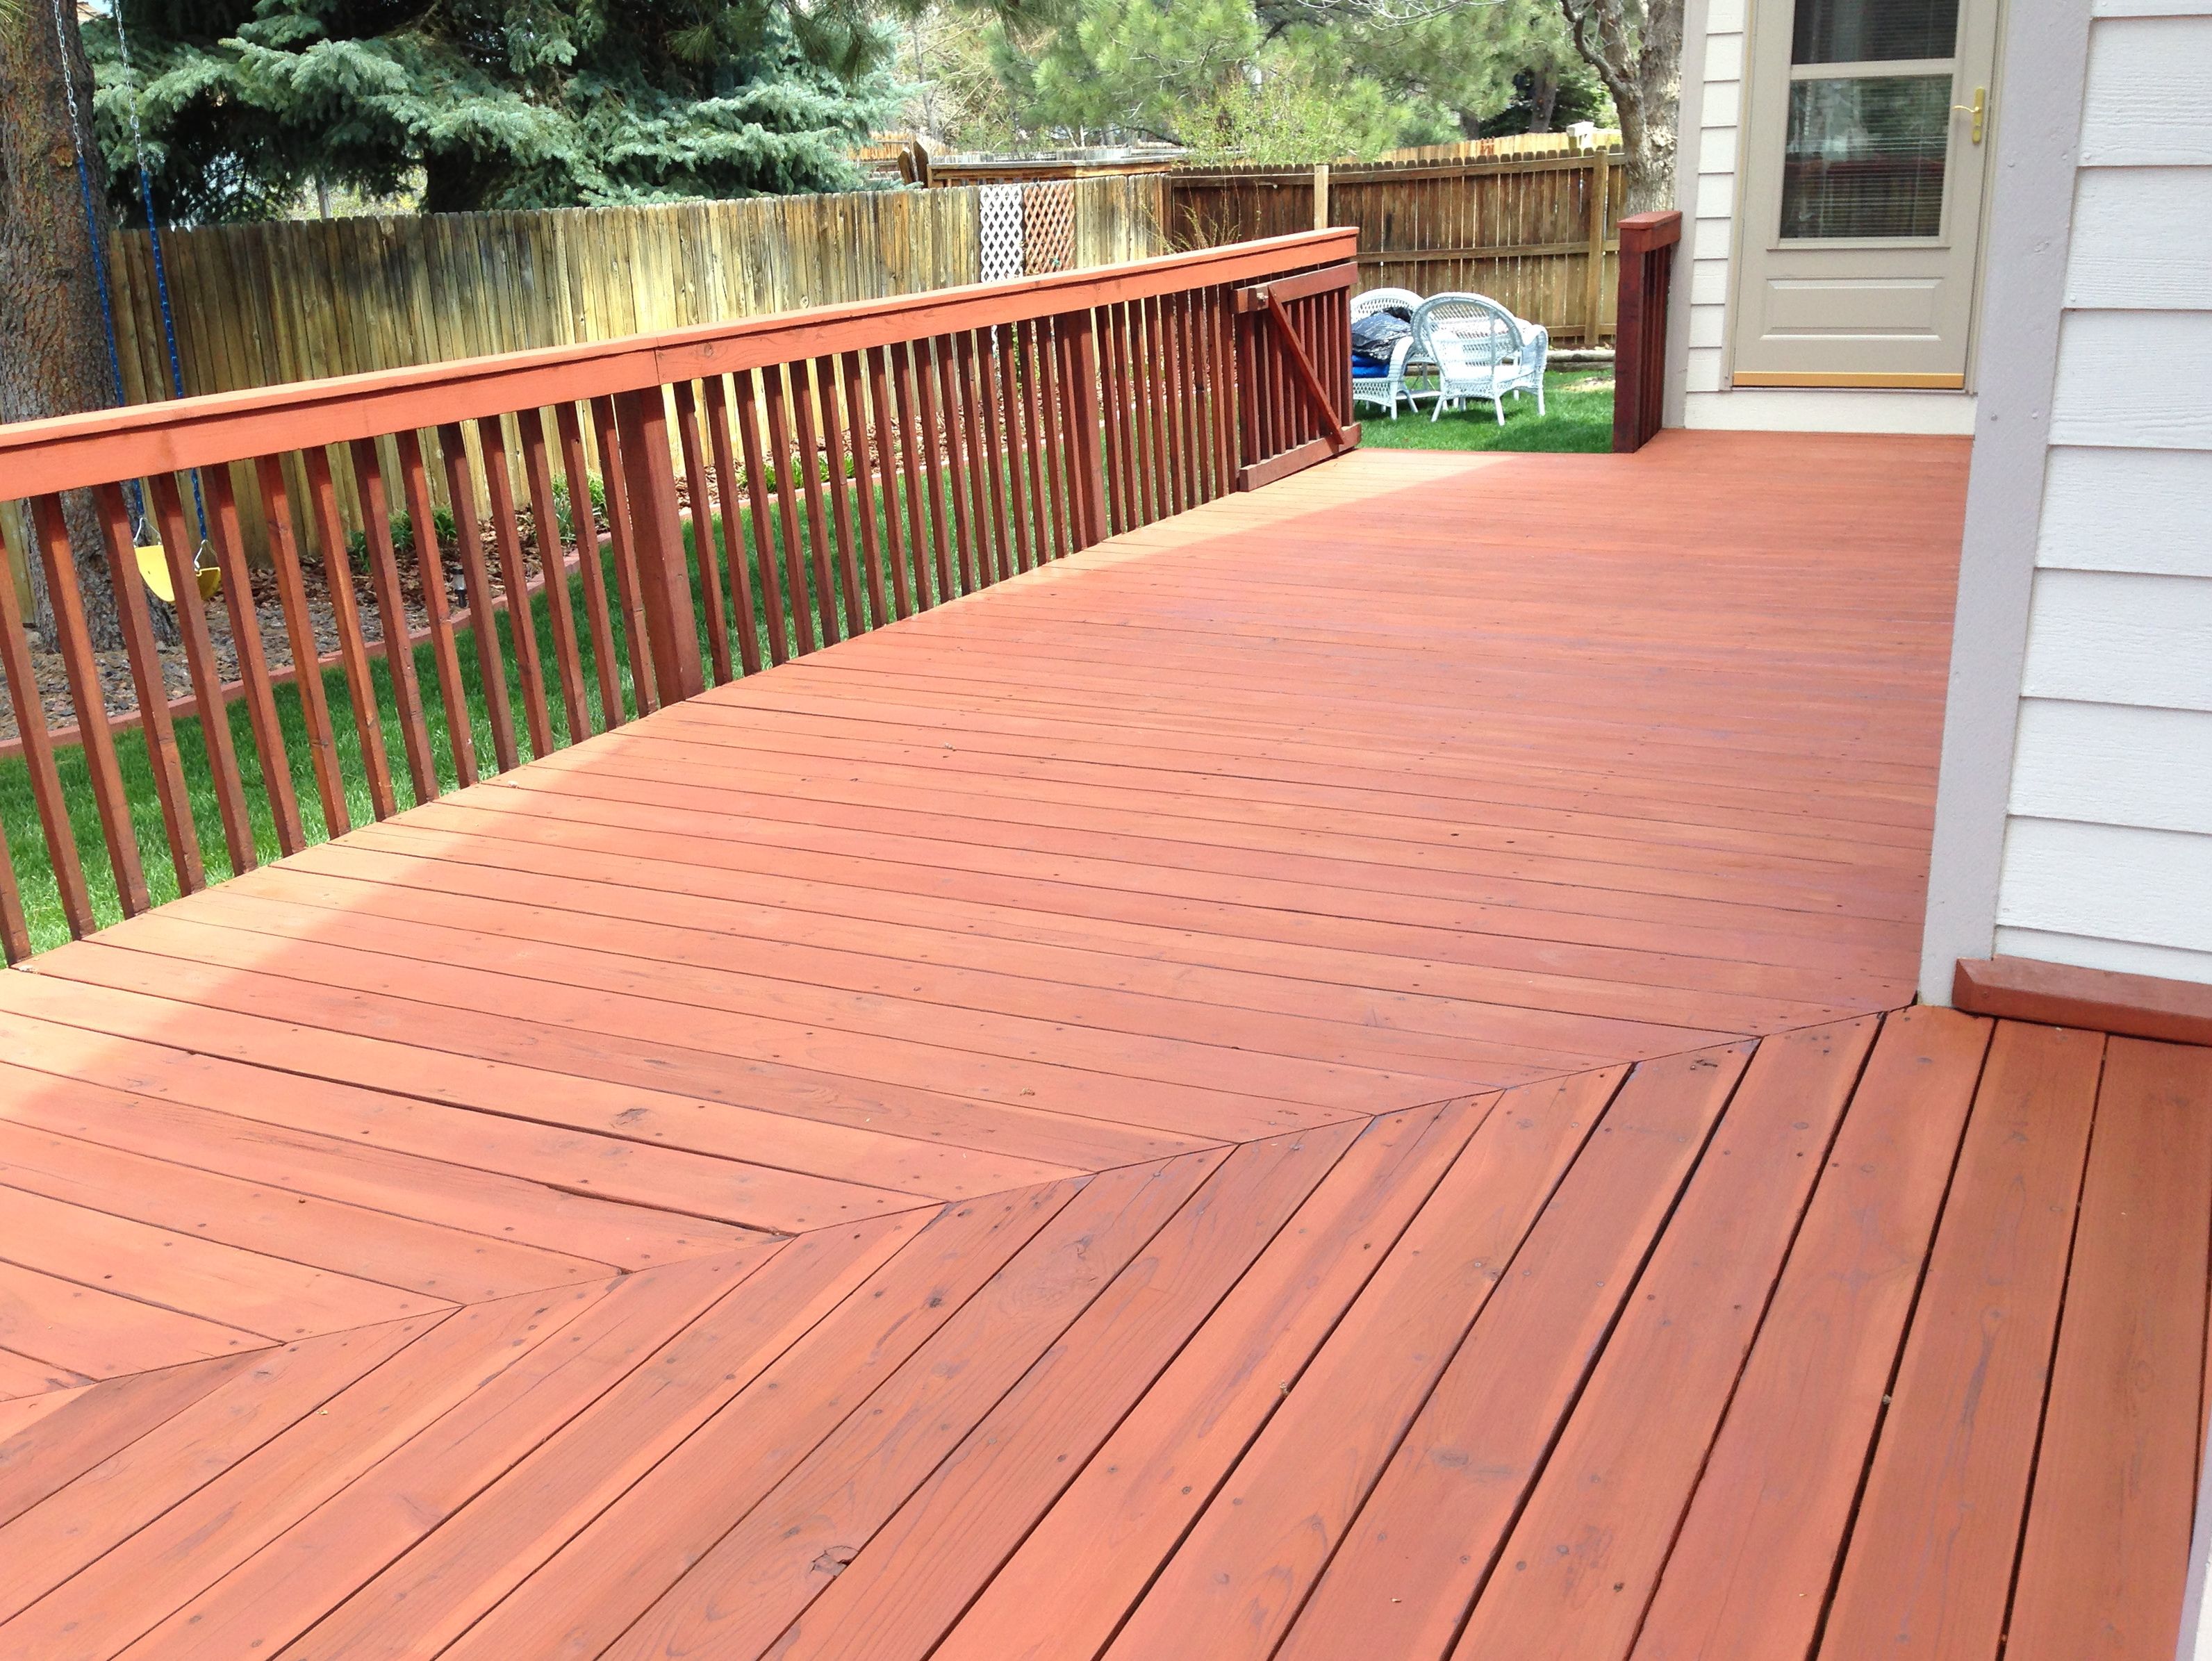 redwood deck stain colors home design ideas. Black Bedroom Furniture Sets. Home Design Ideas